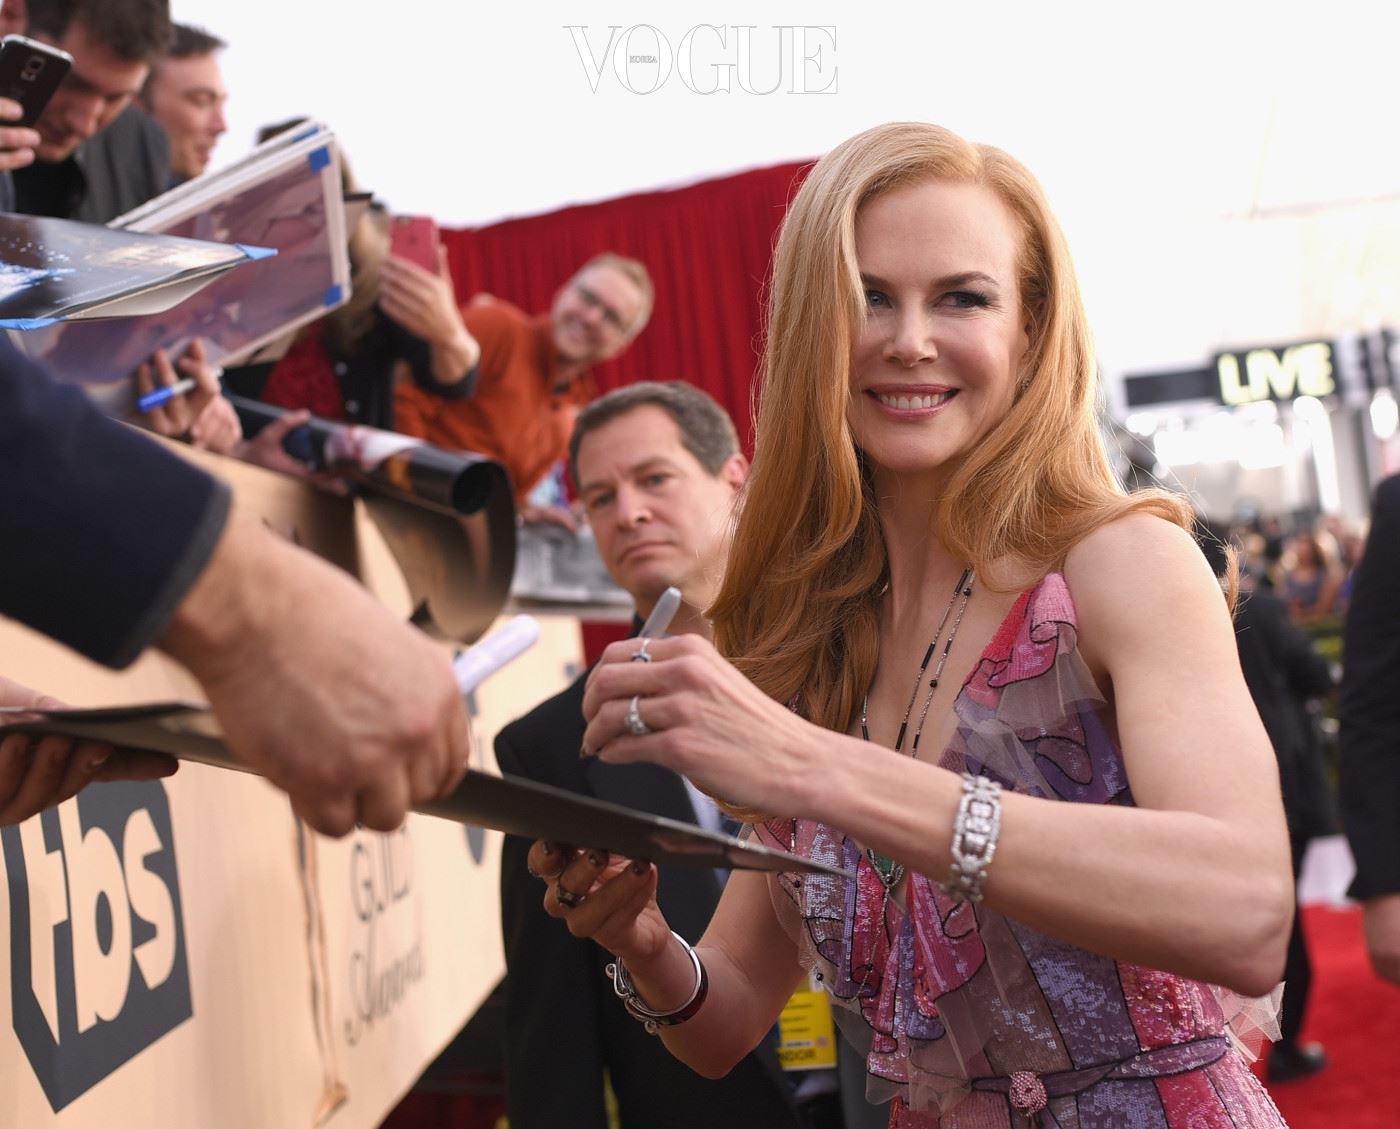 LOS ANGELES, CA - JANUARY 30:  Actress Nicole Kidman signs autographs at The 22nd Annual Screen Actors Guild Awards at The Shrine Auditorium on January 30, 2016 in Los Angeles, California. 25650_014  (Photo by Larry Busacca/Getty Images for Turner)